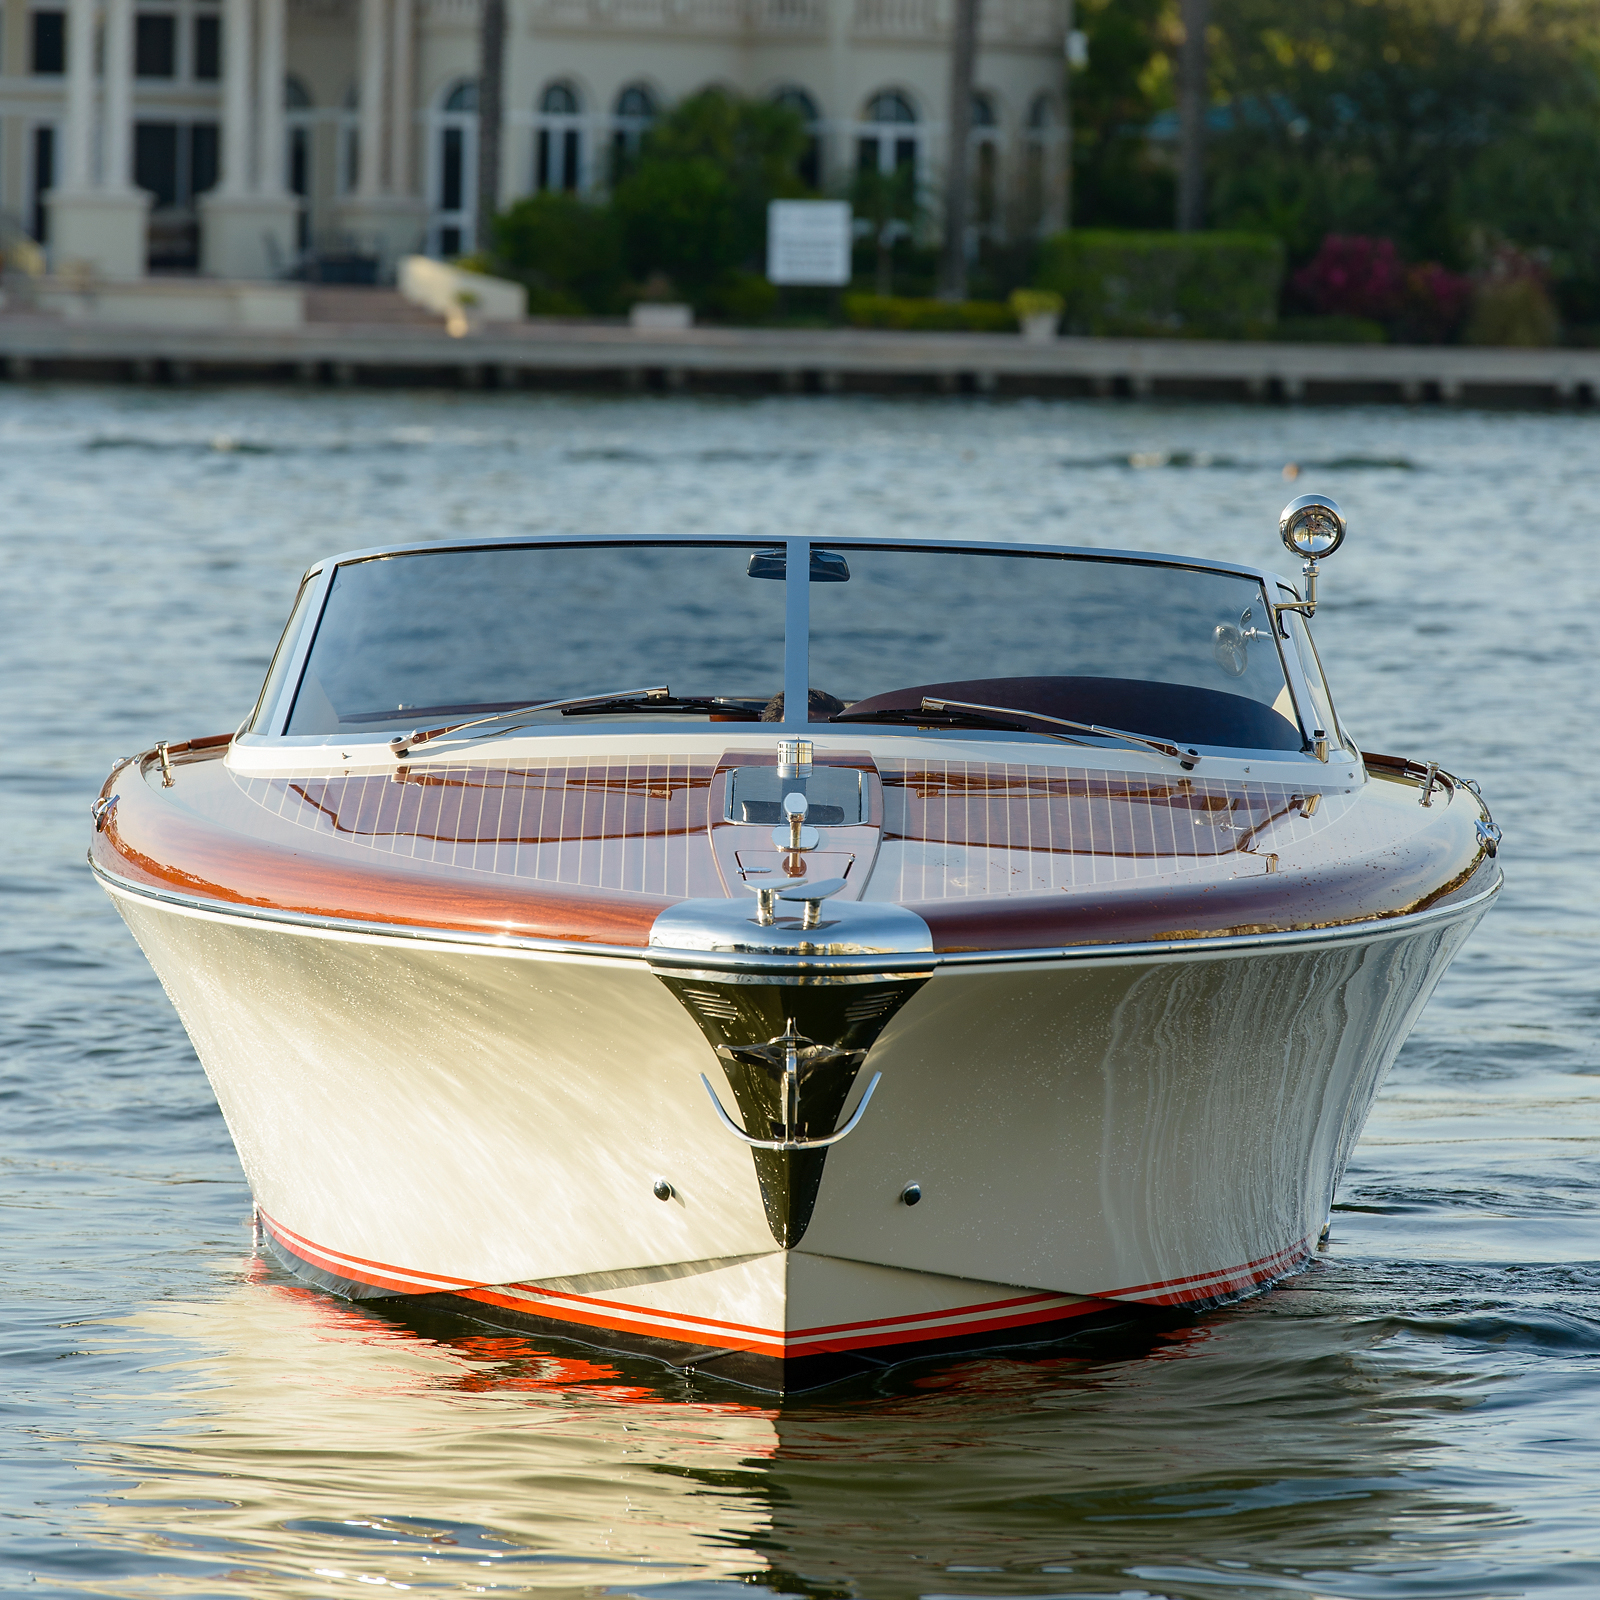 Worlds Most Beautiful Boat Crafted By Riva Yacht Aquariva Super 33 Ft Chris Coughlin Yacht